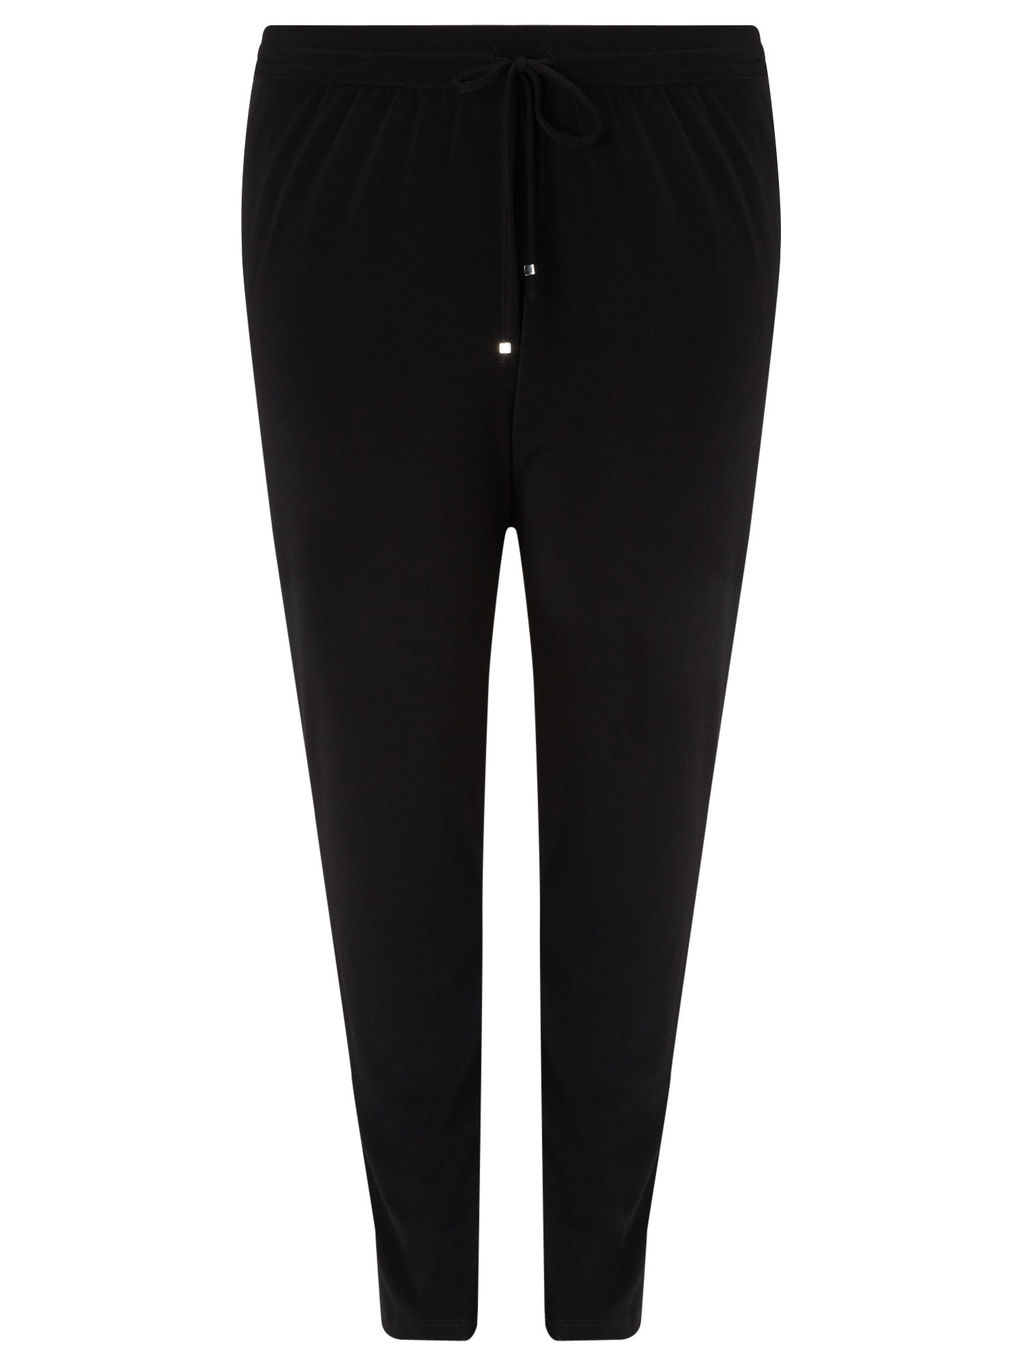 Plain Jersey Tie Waist Trouser - pattern: plain; style: harem/slouch; waist detail: belted waist/tie at waist/drawstring; waist: mid/regular rise; predominant colour: black; length: ankle length; fit: tapered; pattern type: fabric; texture group: jersey - stretchy/drapey; occasions: creative work; season: a/w 2015